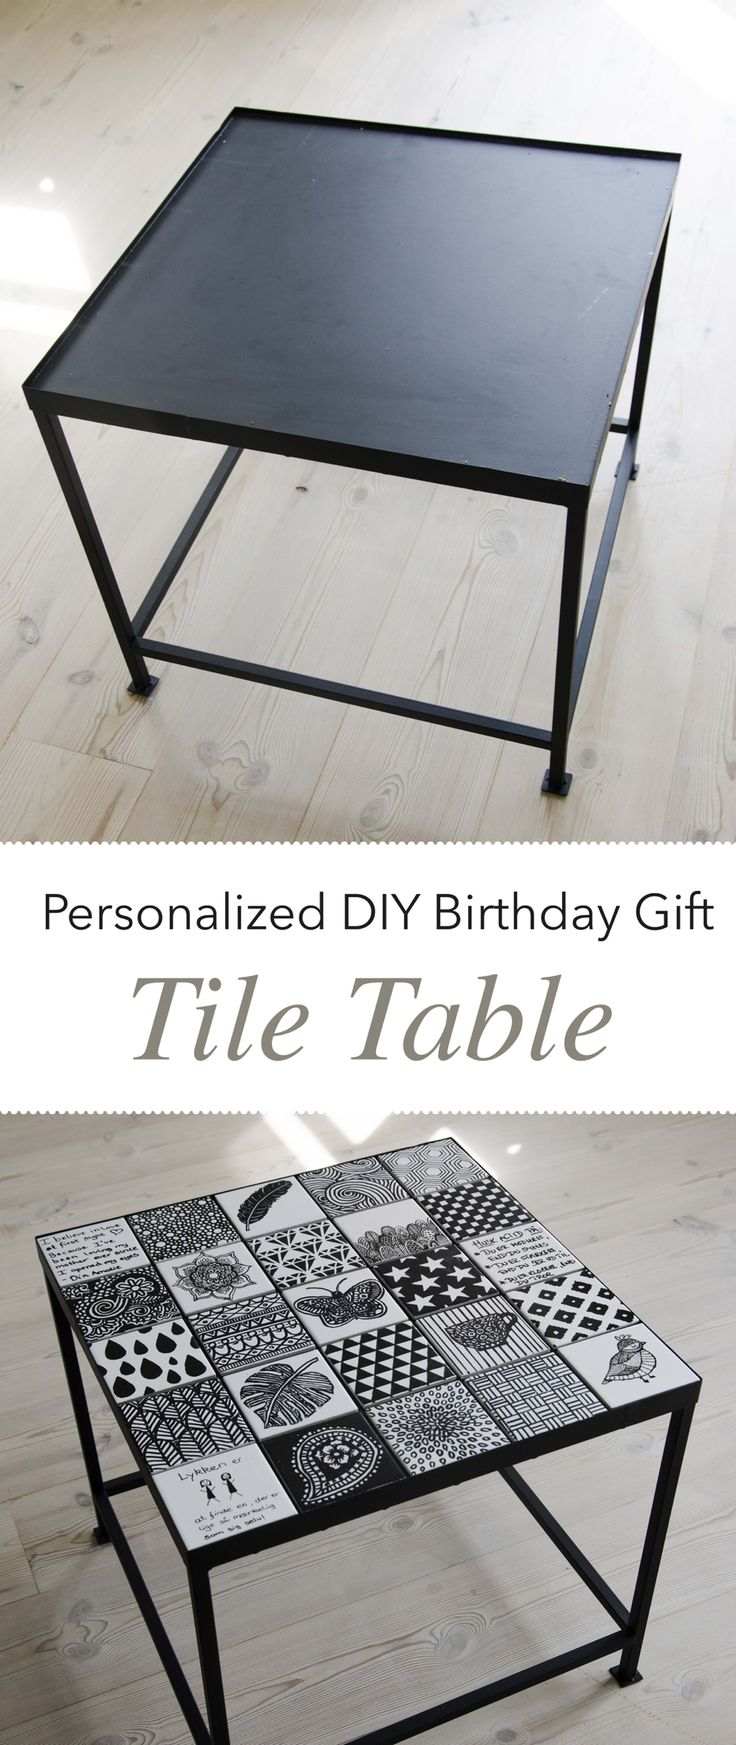 Personalized diy birthday gift tile table mom